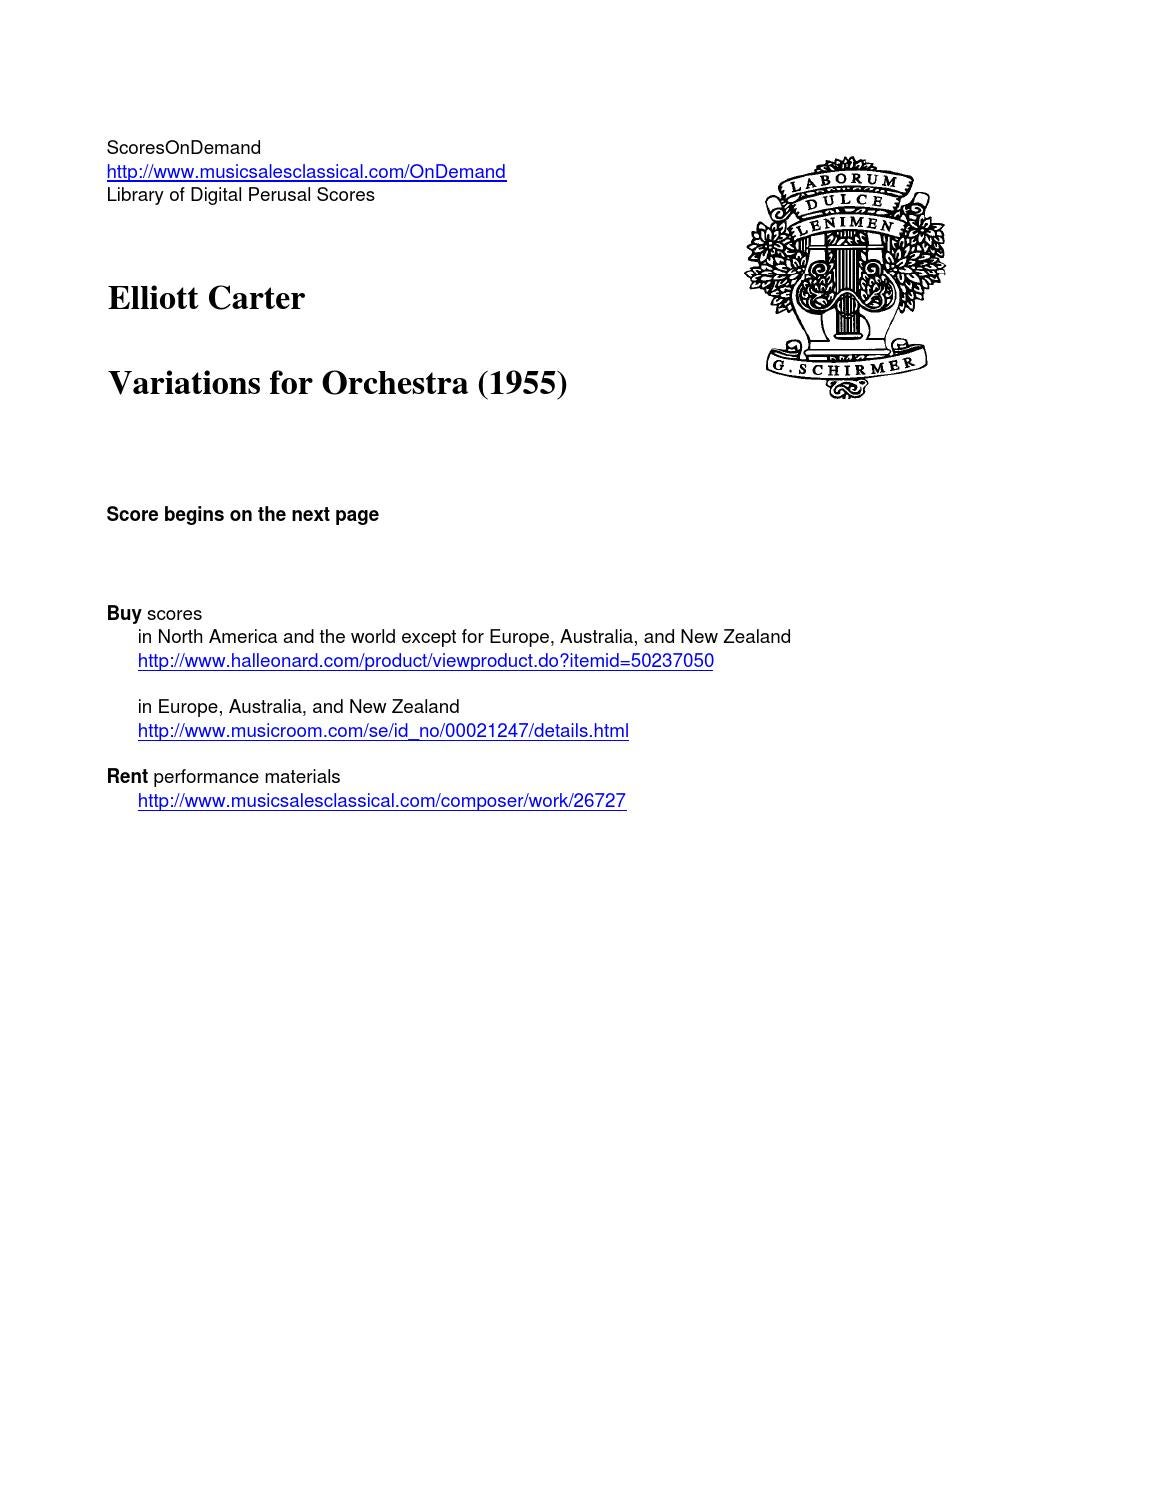 essay for orchestra samuel barber essay for orchestra essay help barber second essay for orchestra by scoresondemand issuucarter variations for orchestra